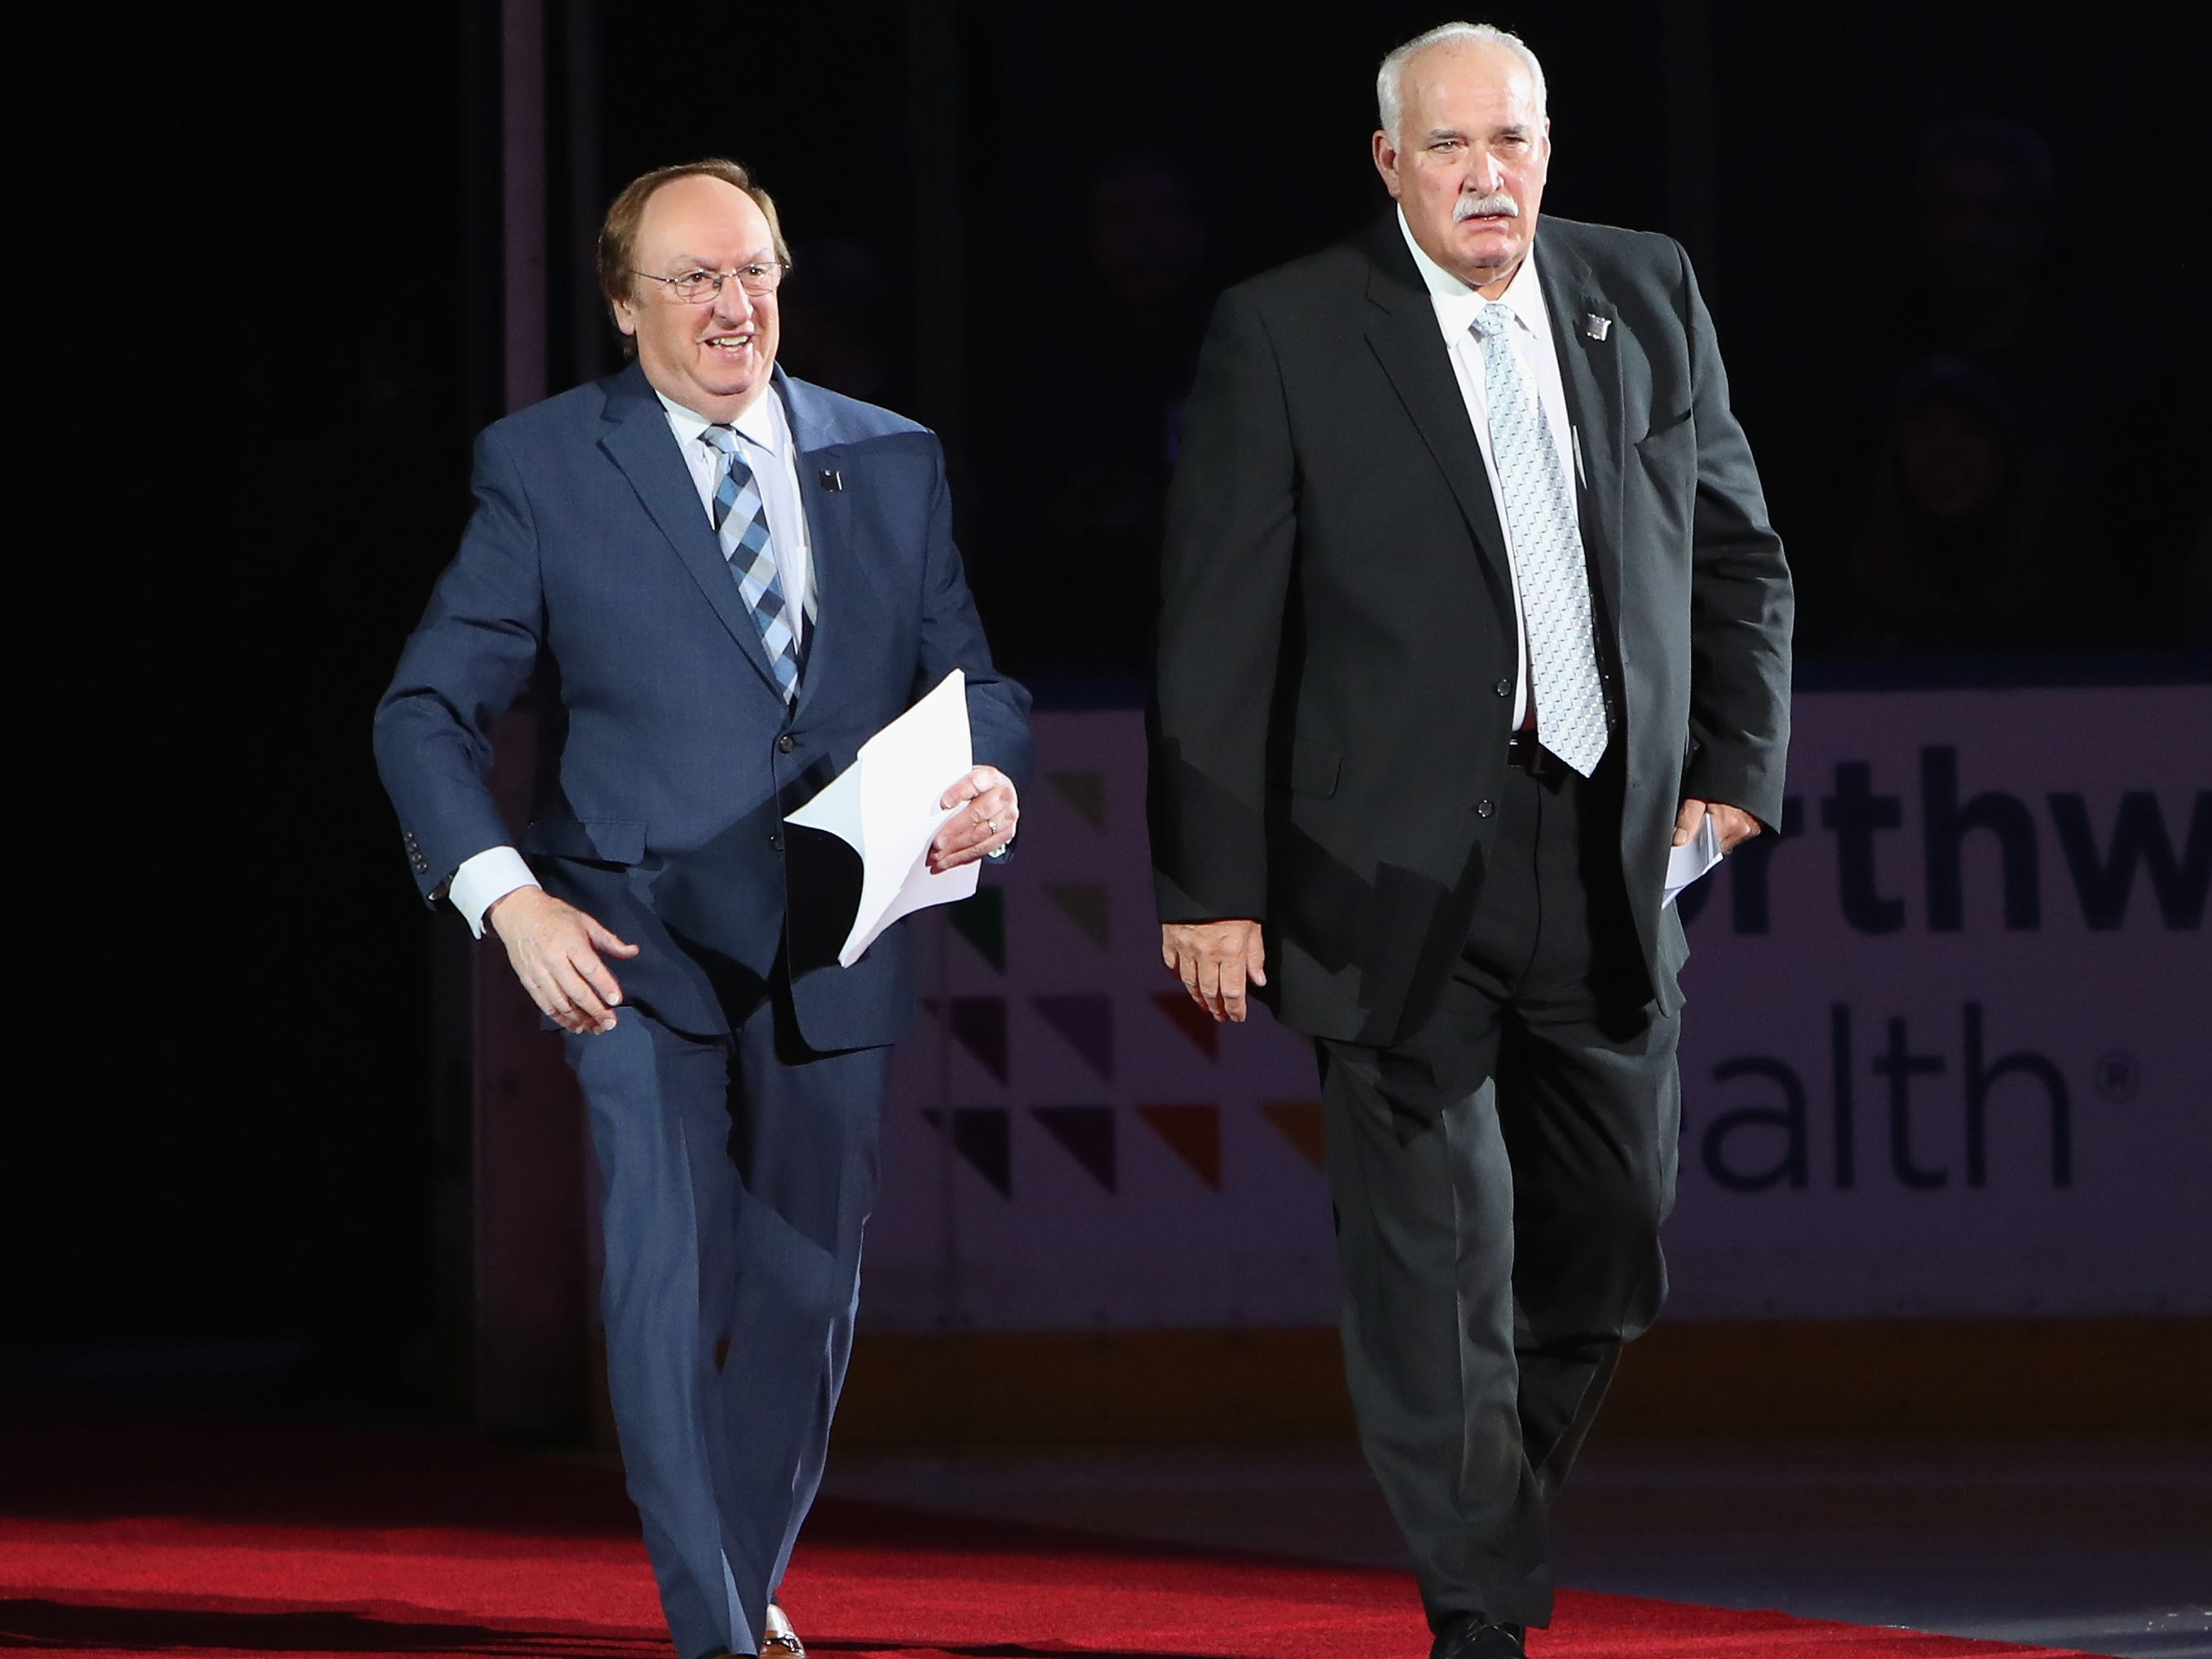 NEW YORK, NEW YORK - FEBRUARY 08: (l-r) Sam Rosen and John Davidson arrive to MC the ceremony for the New York Rangers 1994 Cup winning team prior to the Rangers game against the Carolina Hurricanes at Madison Square Garden on February 08, 2019 in New York City. The Rangers were celebrating the 25th anniversary of their Stanley Cup win in 1994.